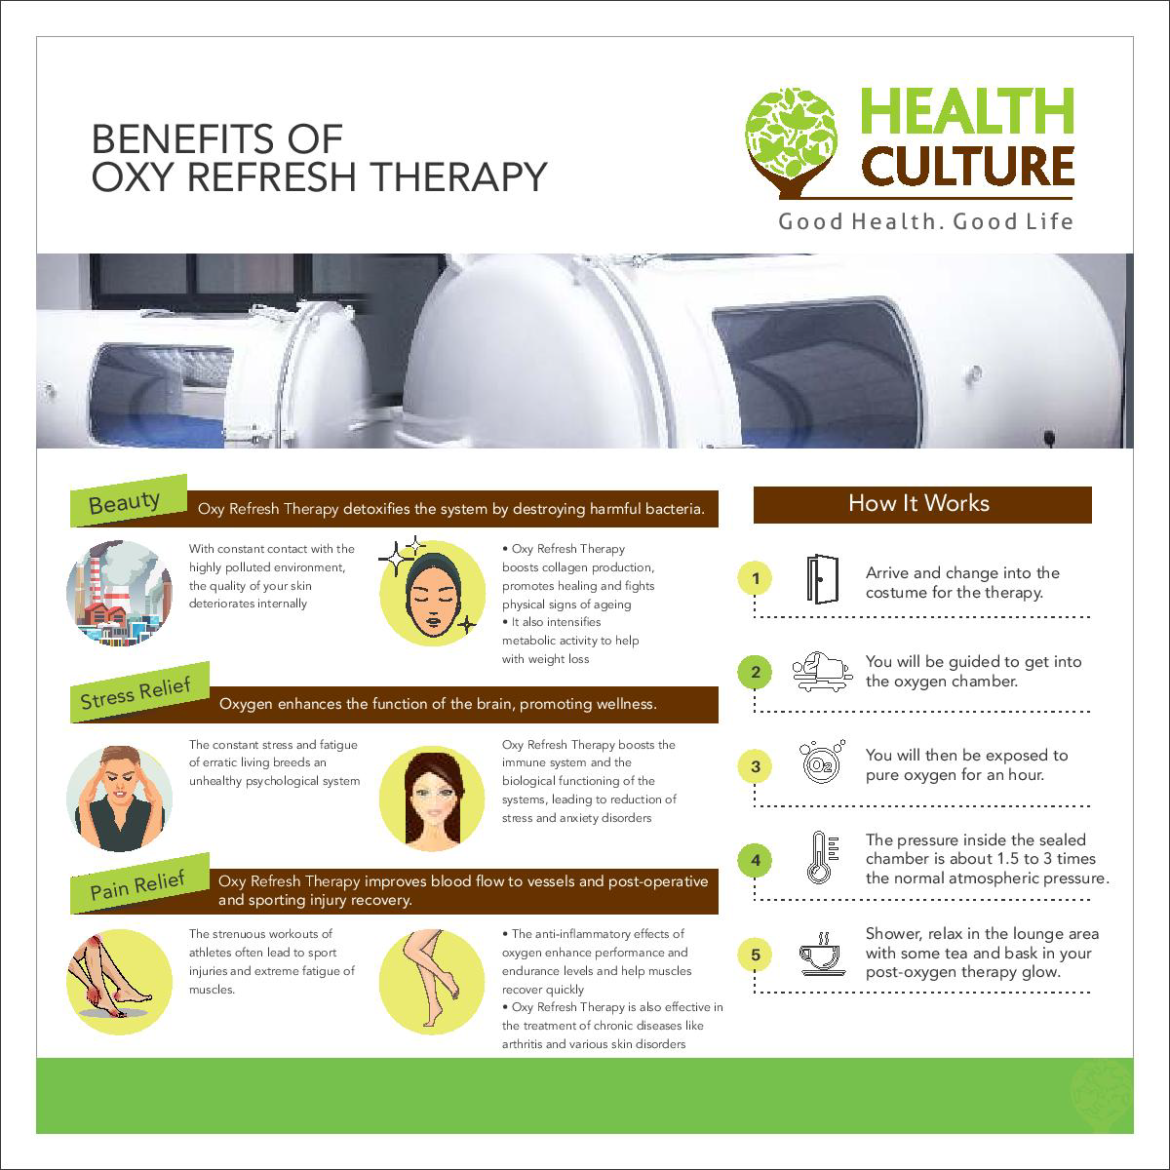 Benefits of Oxy Refresh Therapy Article - Health Culture